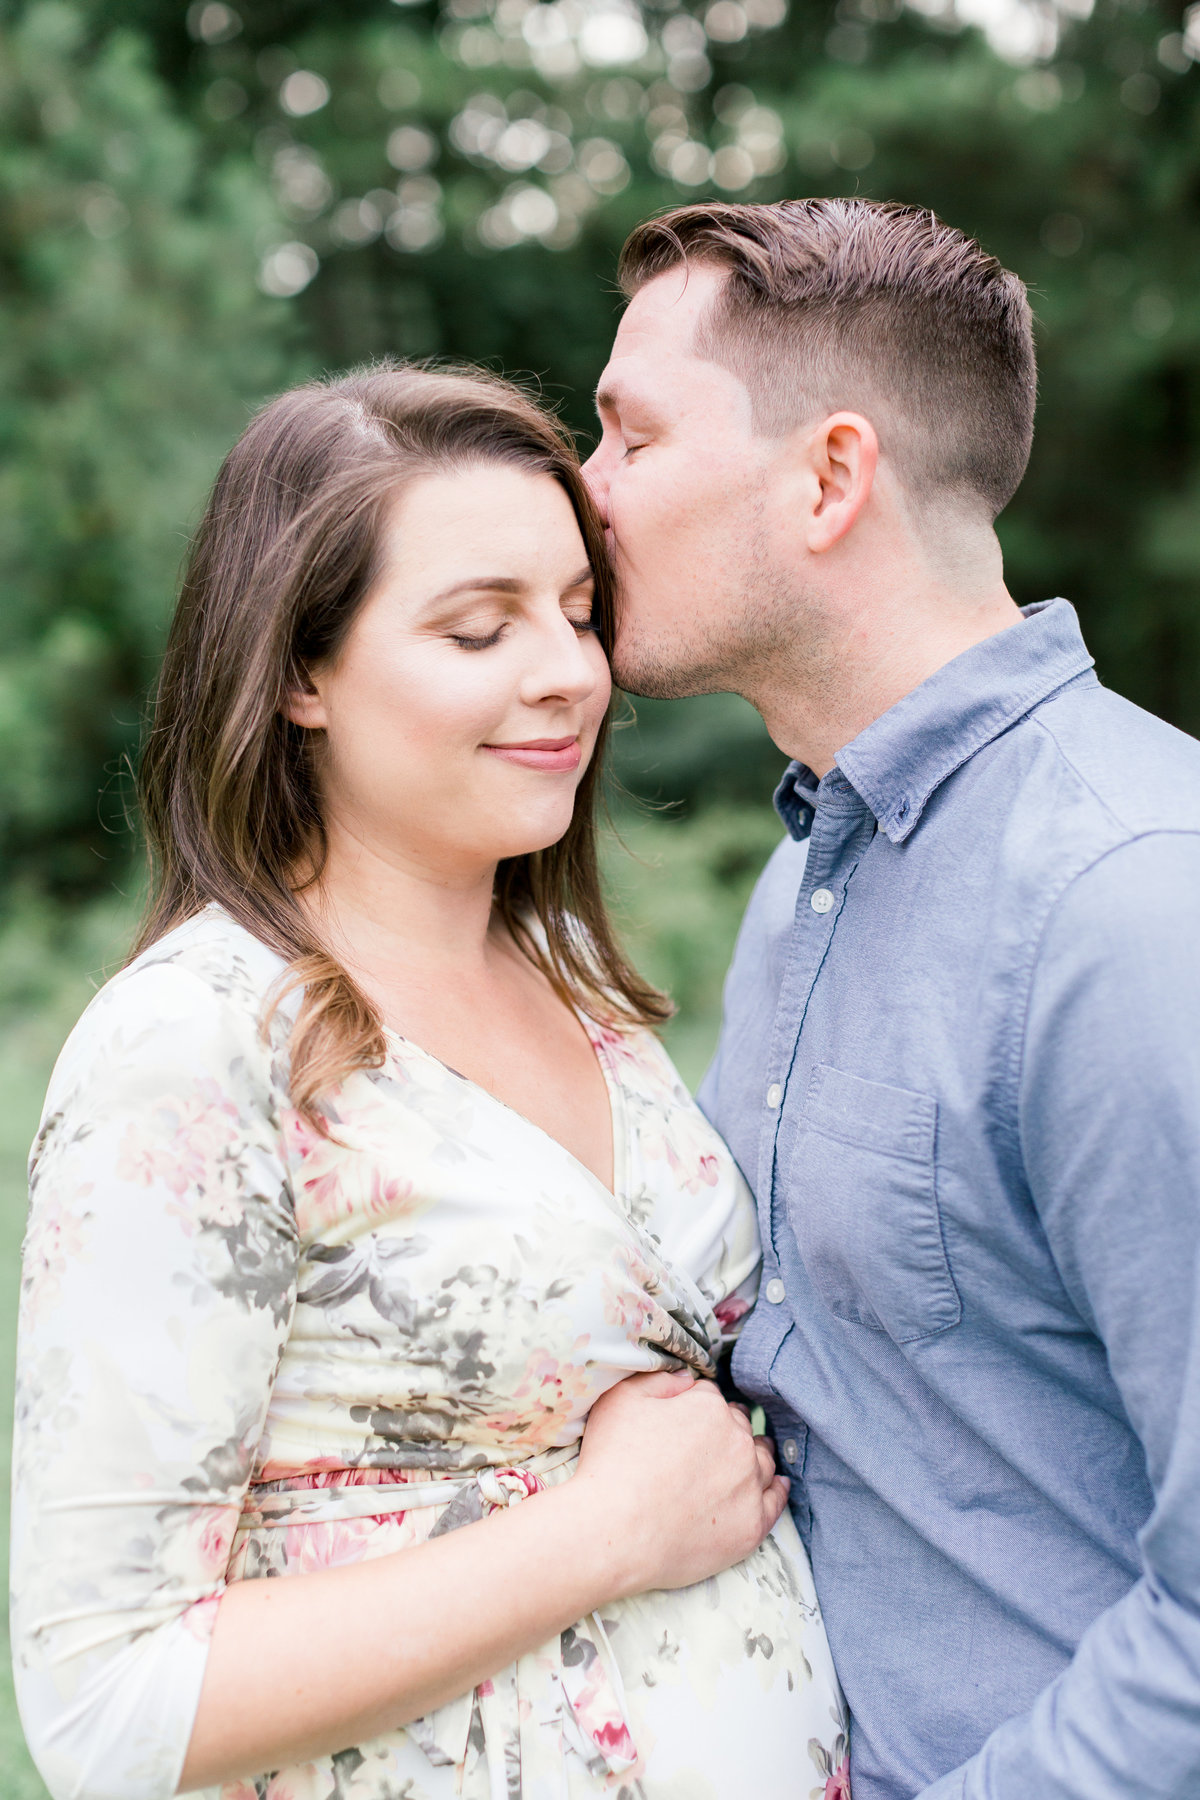 Dave and Emily-Maternity Session-Samantha Laffoon Photography-6